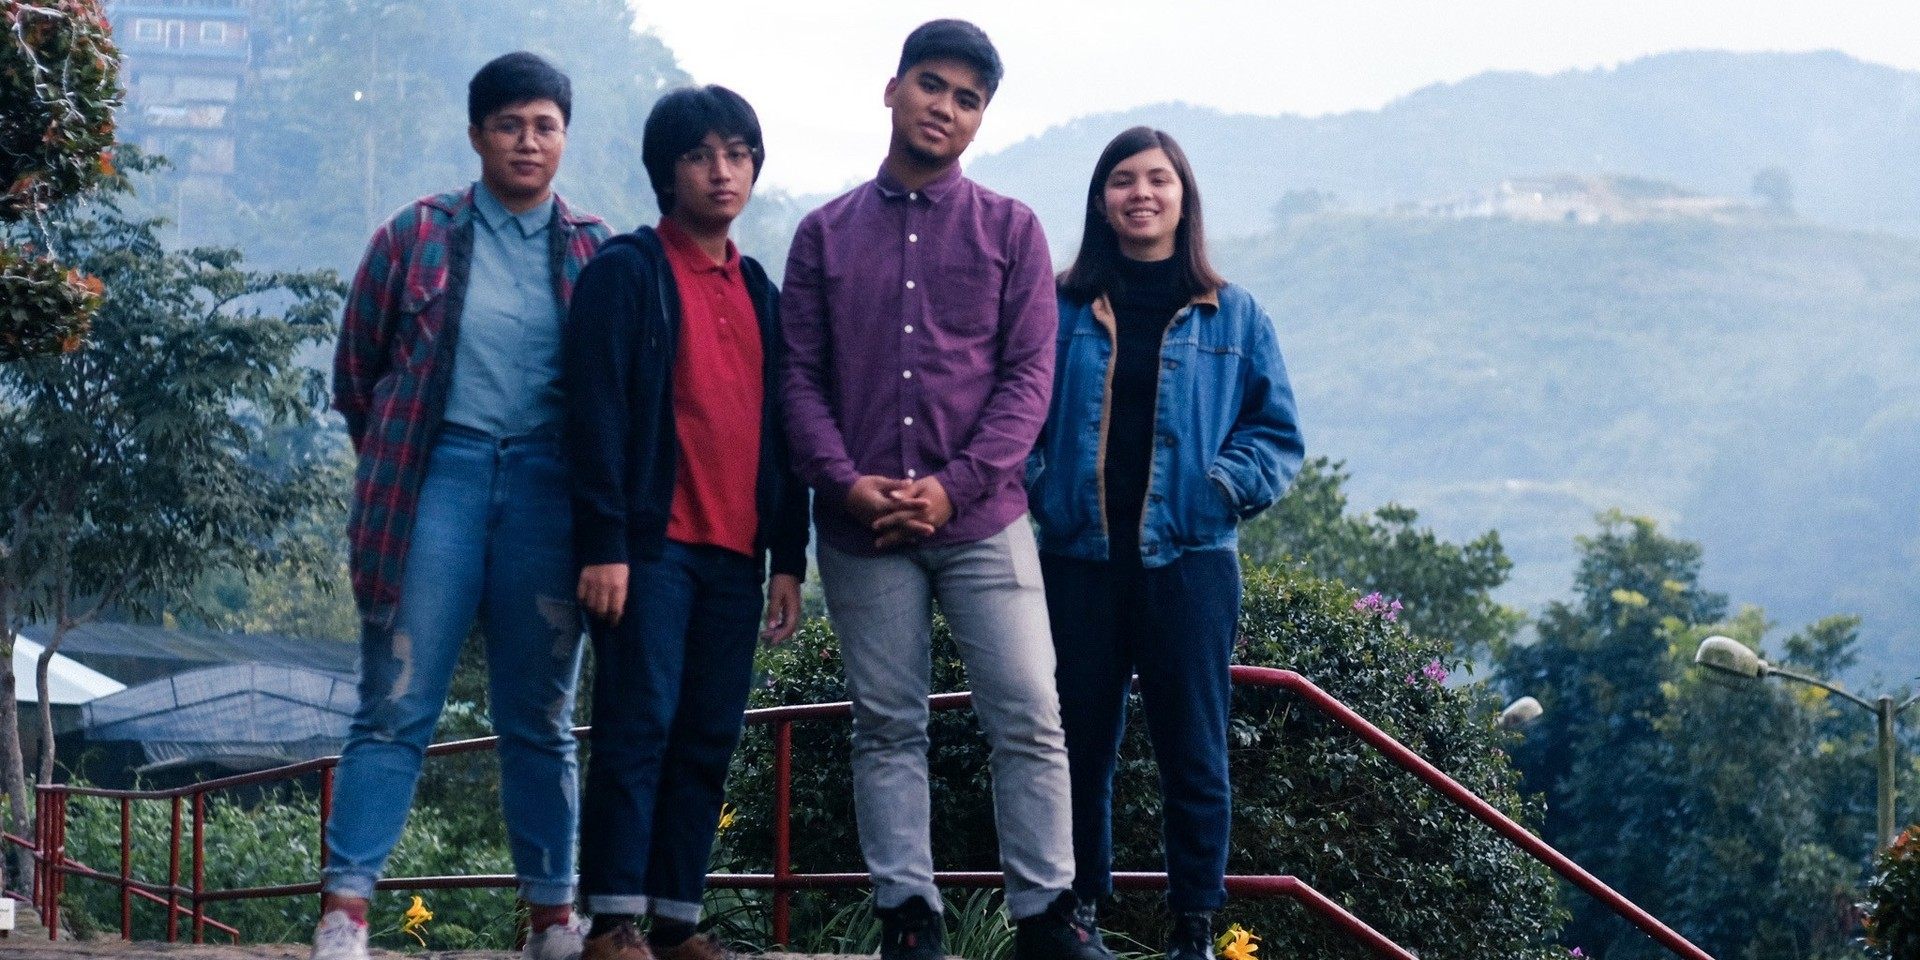 Pat Sarabia joins Oh, Flamingo! as the band's new drummer